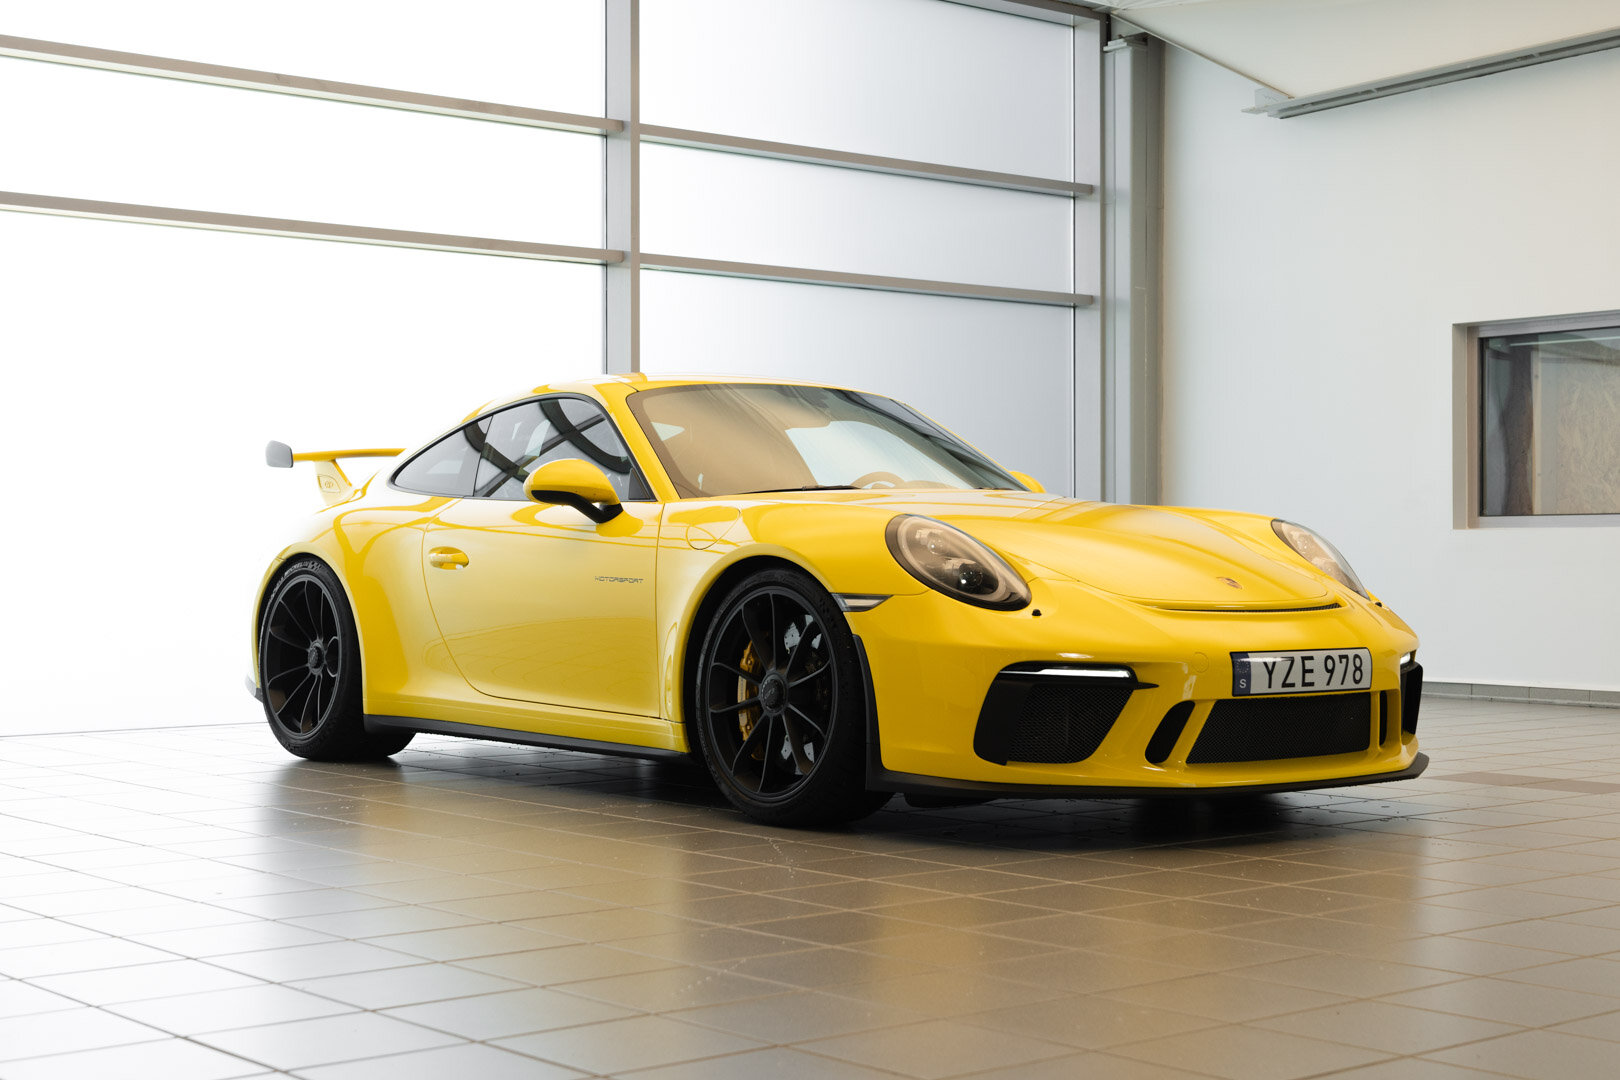 Porsche 911 991 Gt3 For Sale Used Porsche Sportscars Elferspot